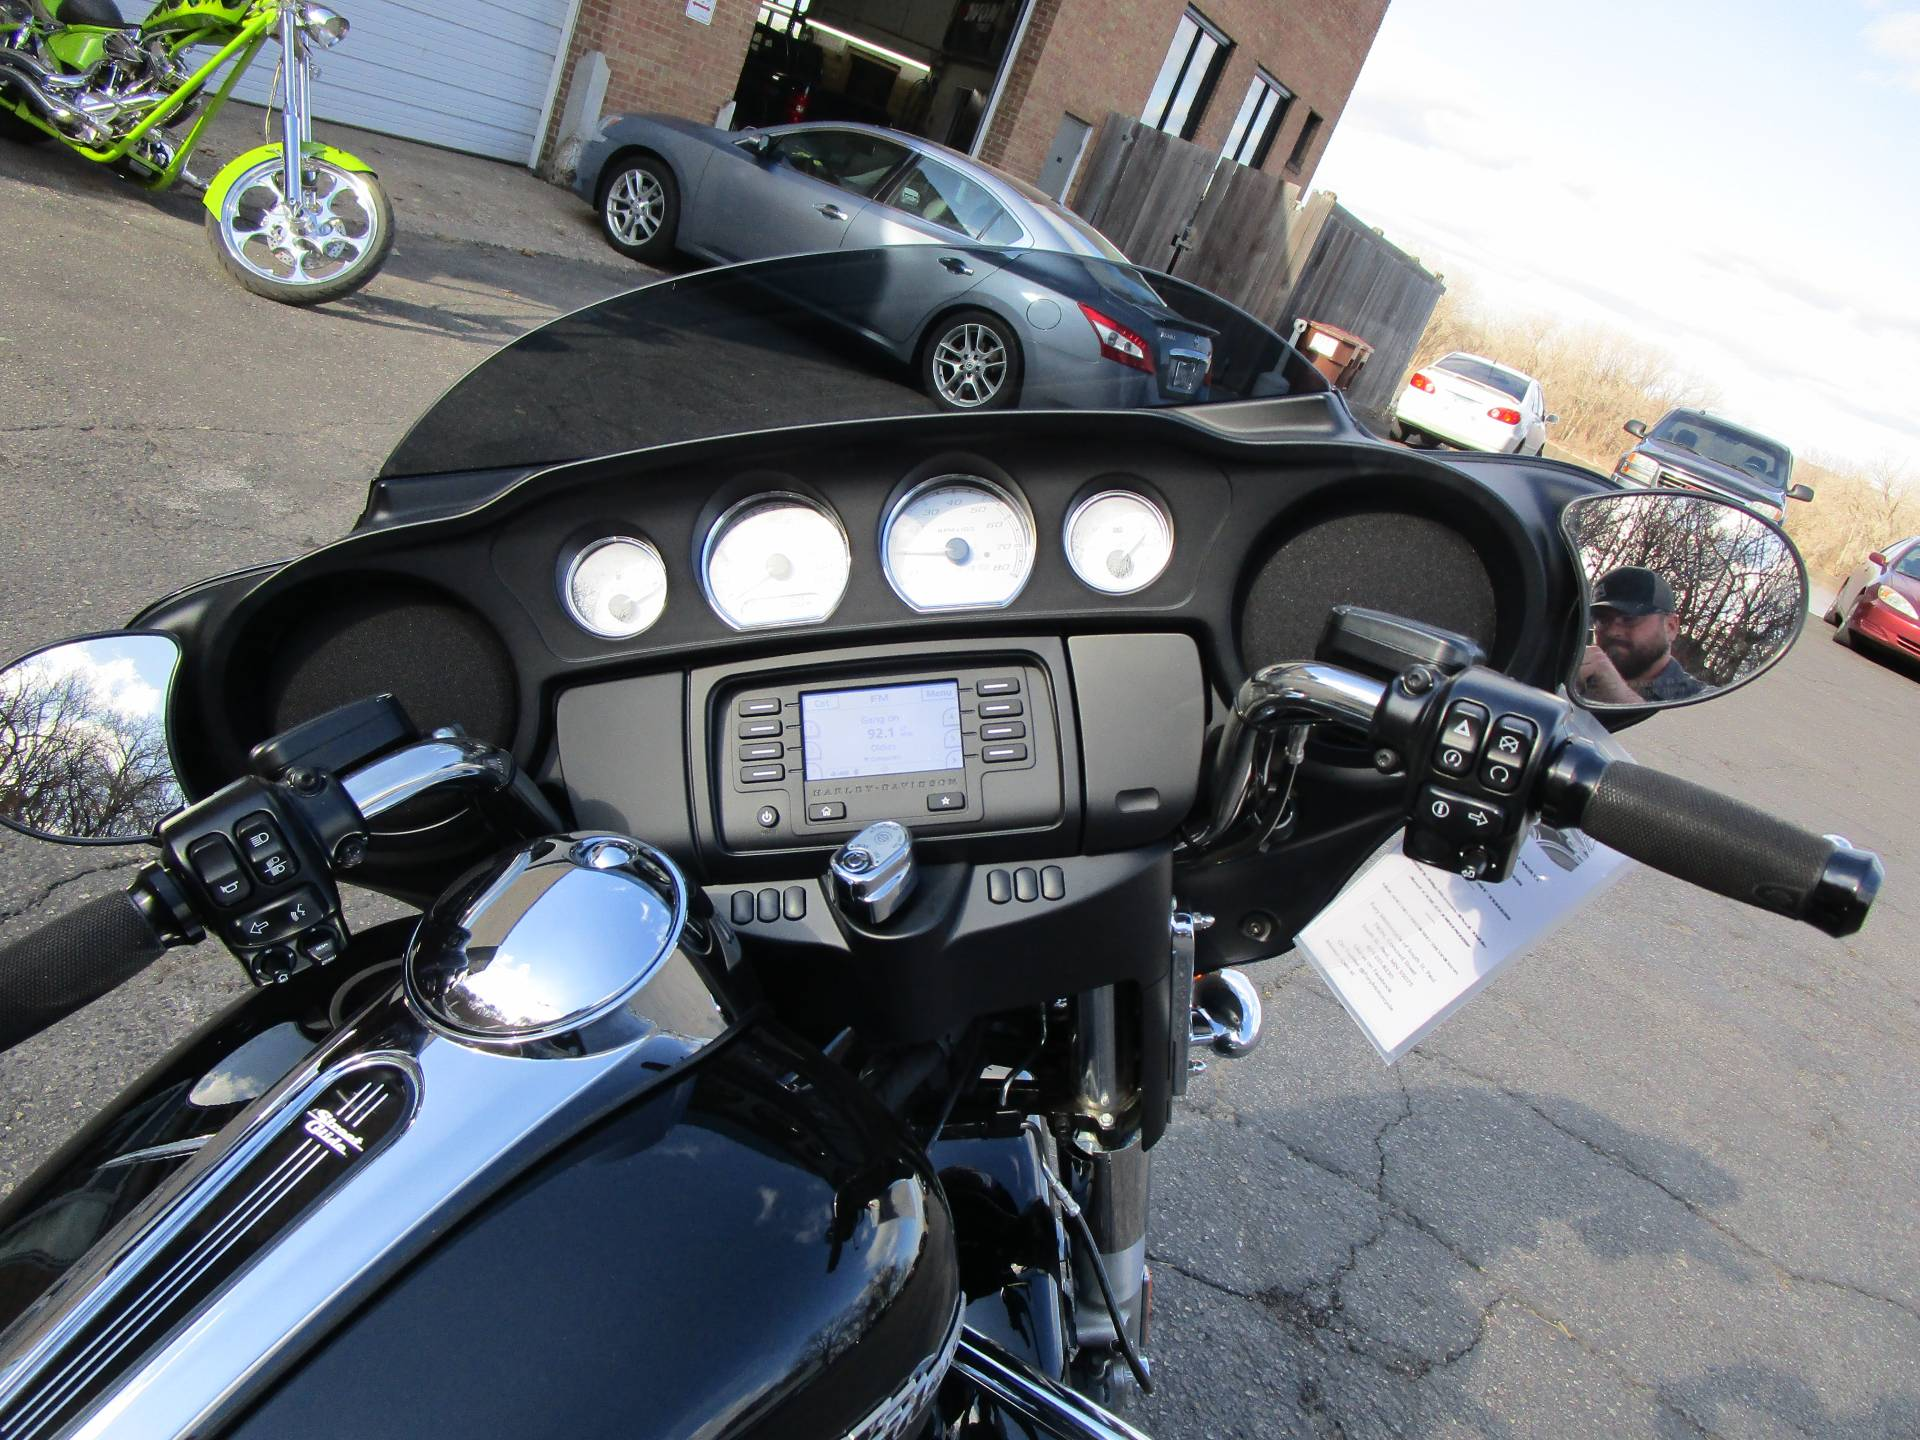 2017 Harley-Davidson Street Glide® in South Saint Paul, Minnesota - Photo 11